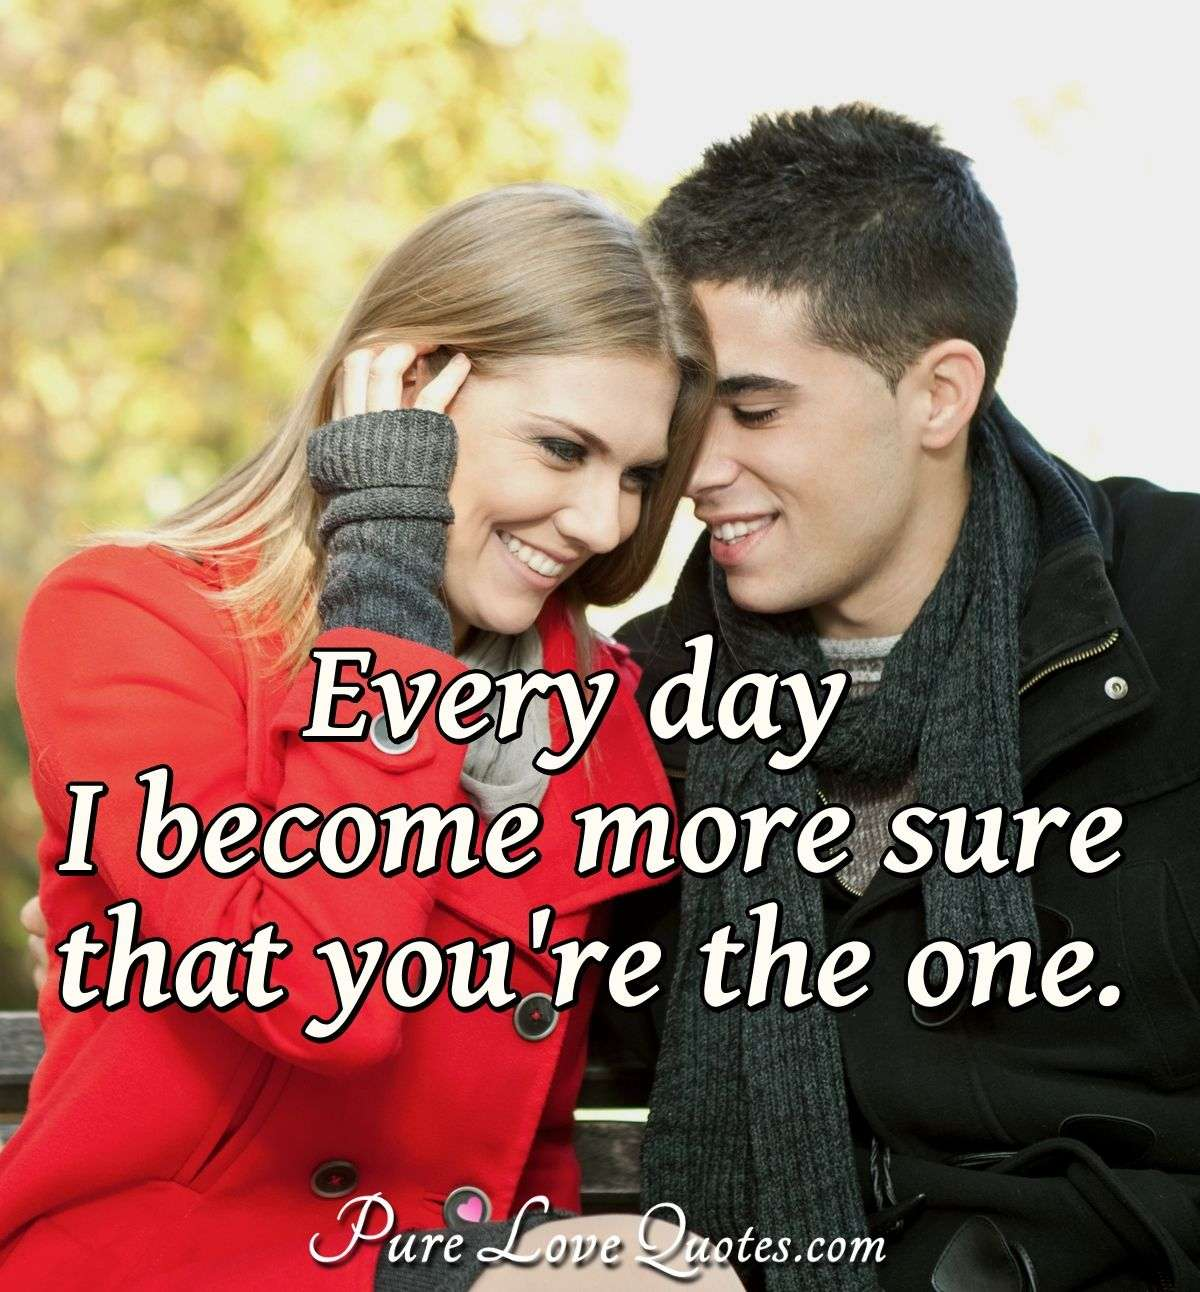 Every day I become more sure that you're the one. - Anonymous